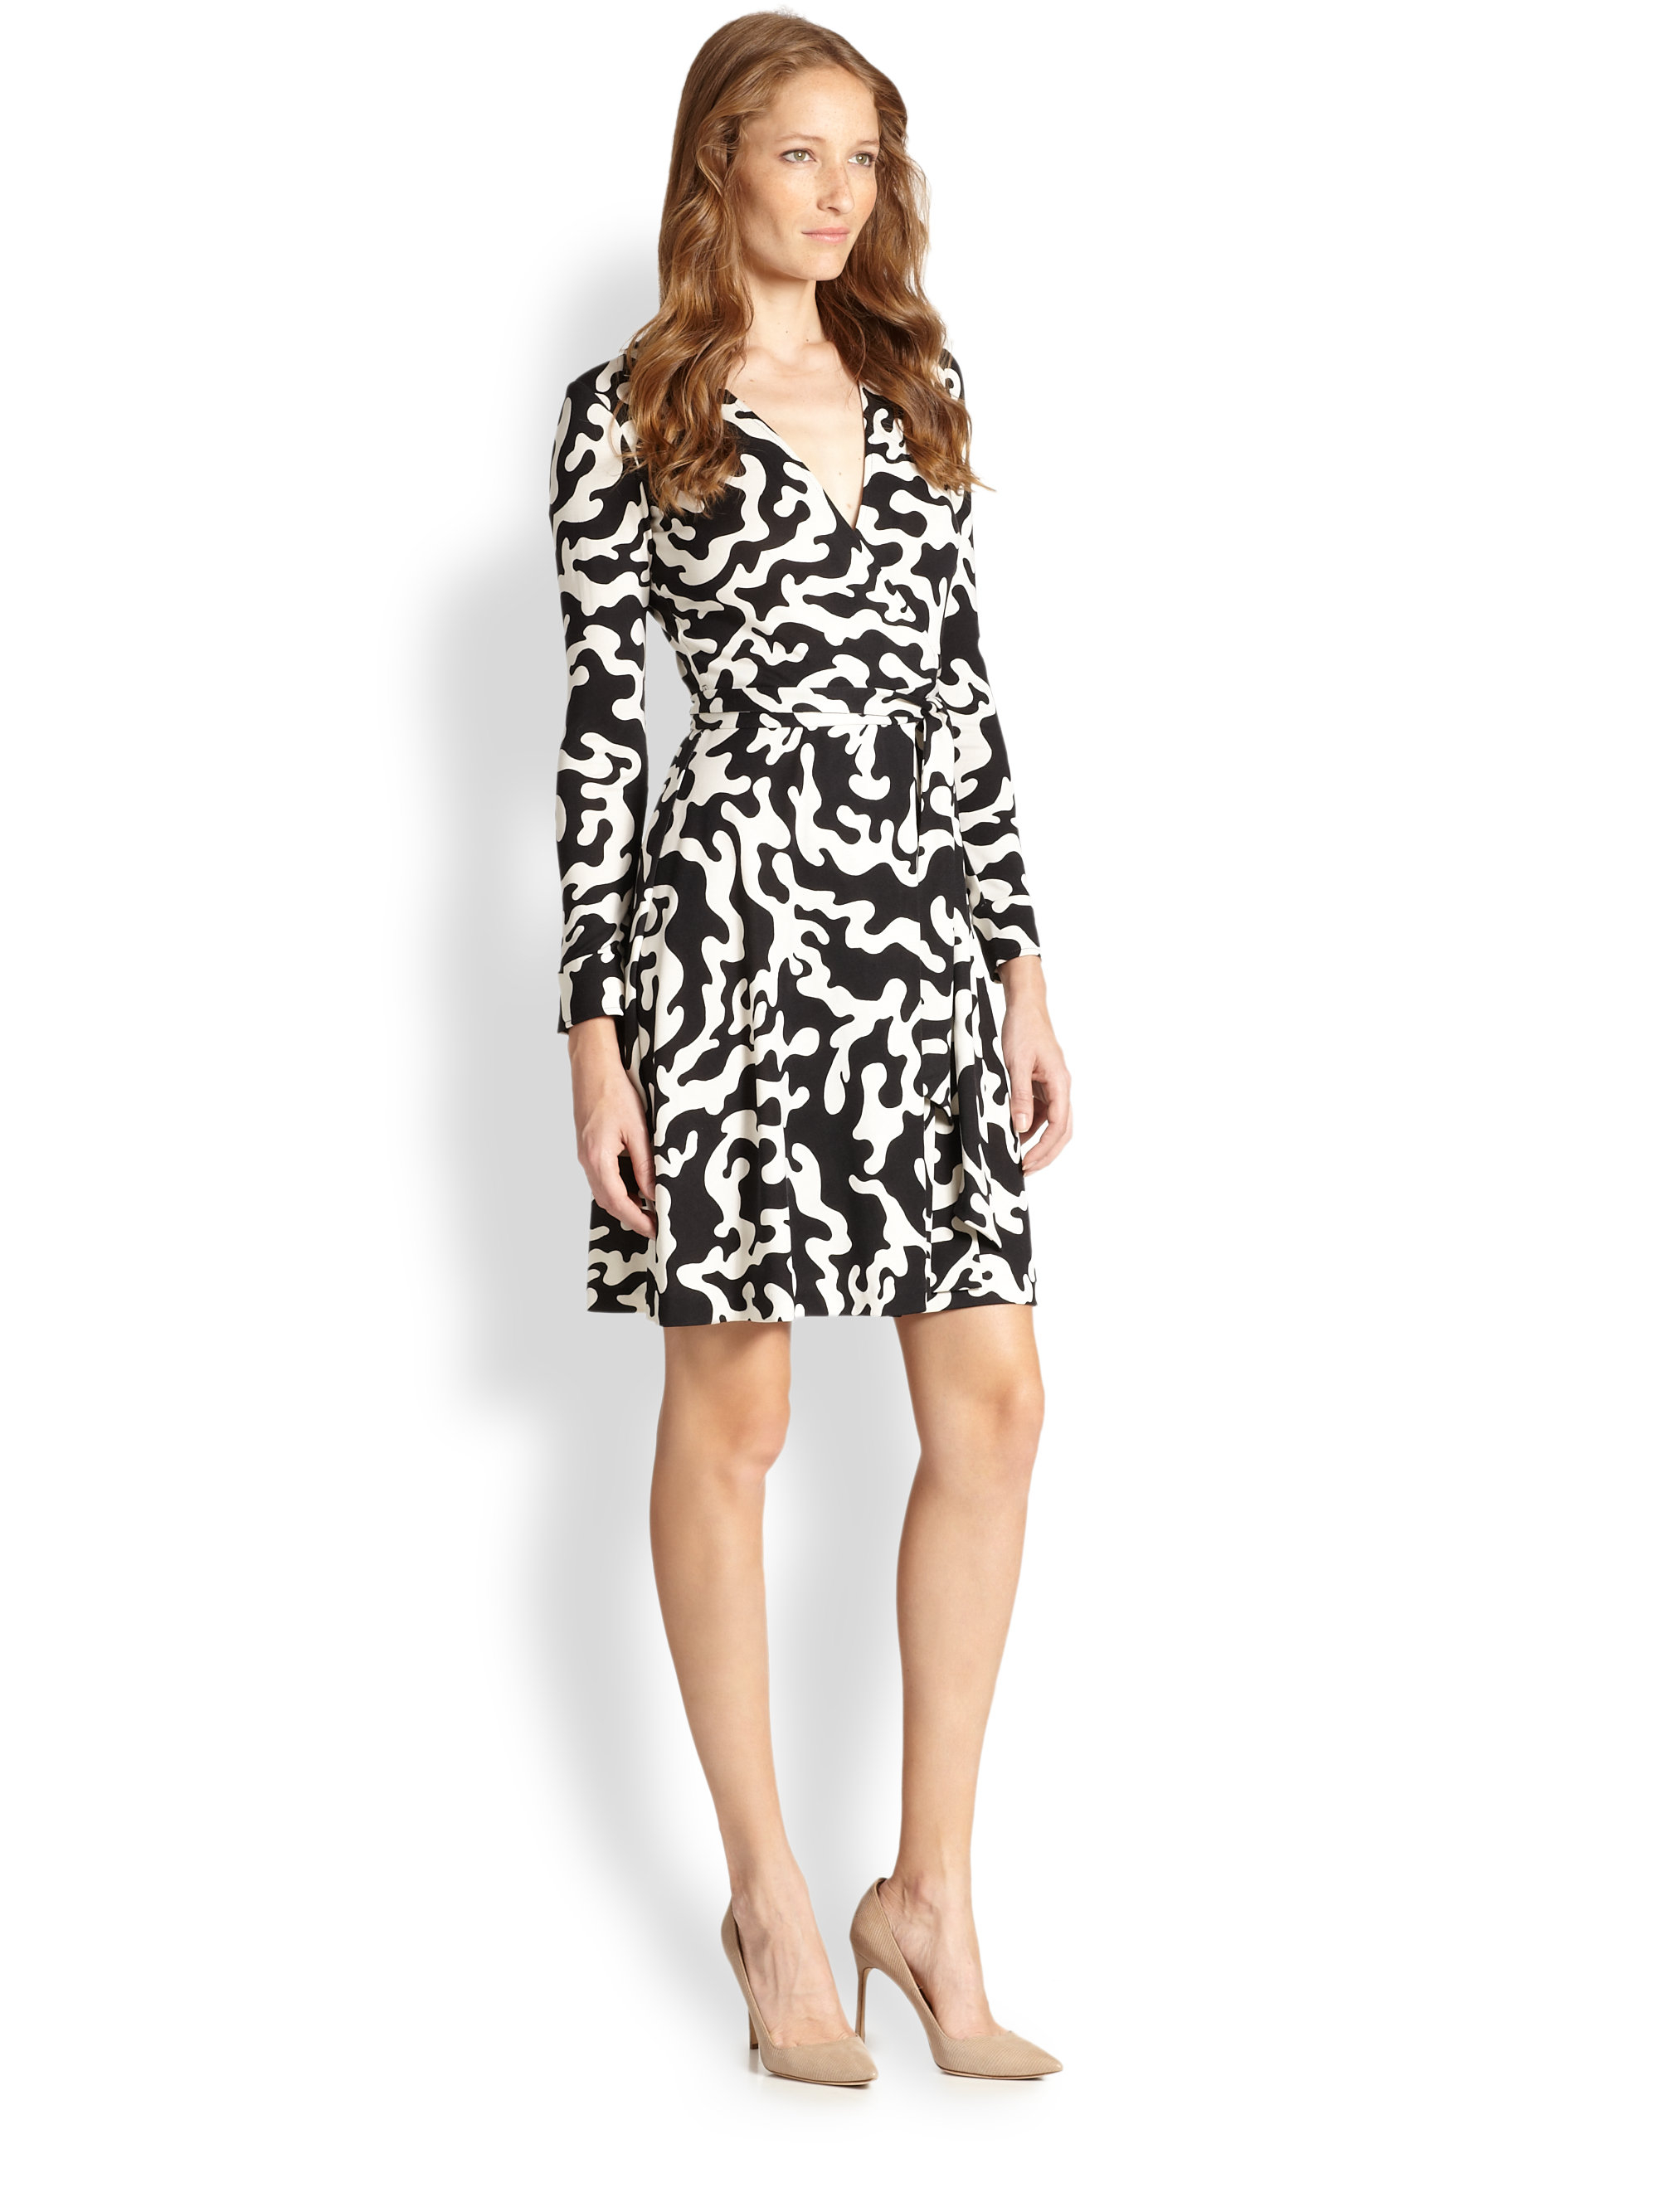 Diane von furstenberg firebird printed wrap dress in black for Diane von furstenberg clothes